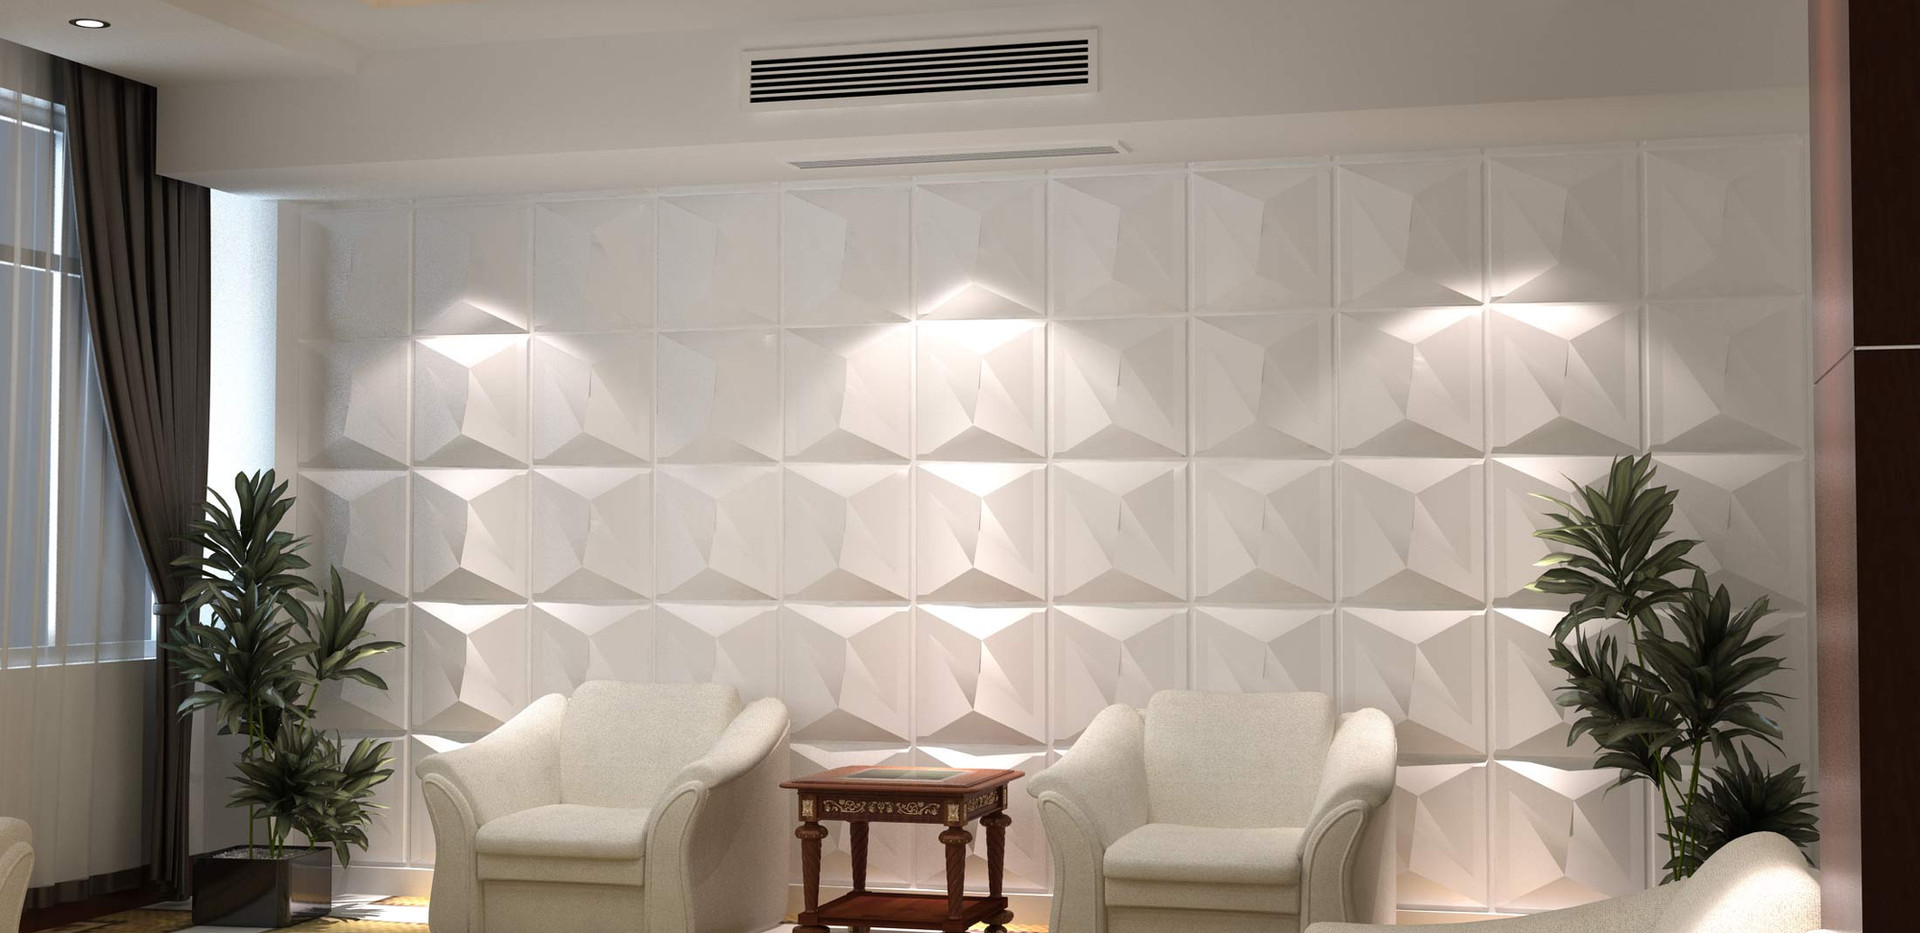 Acoustic-Sound-Modern-3D-Decor.jpg